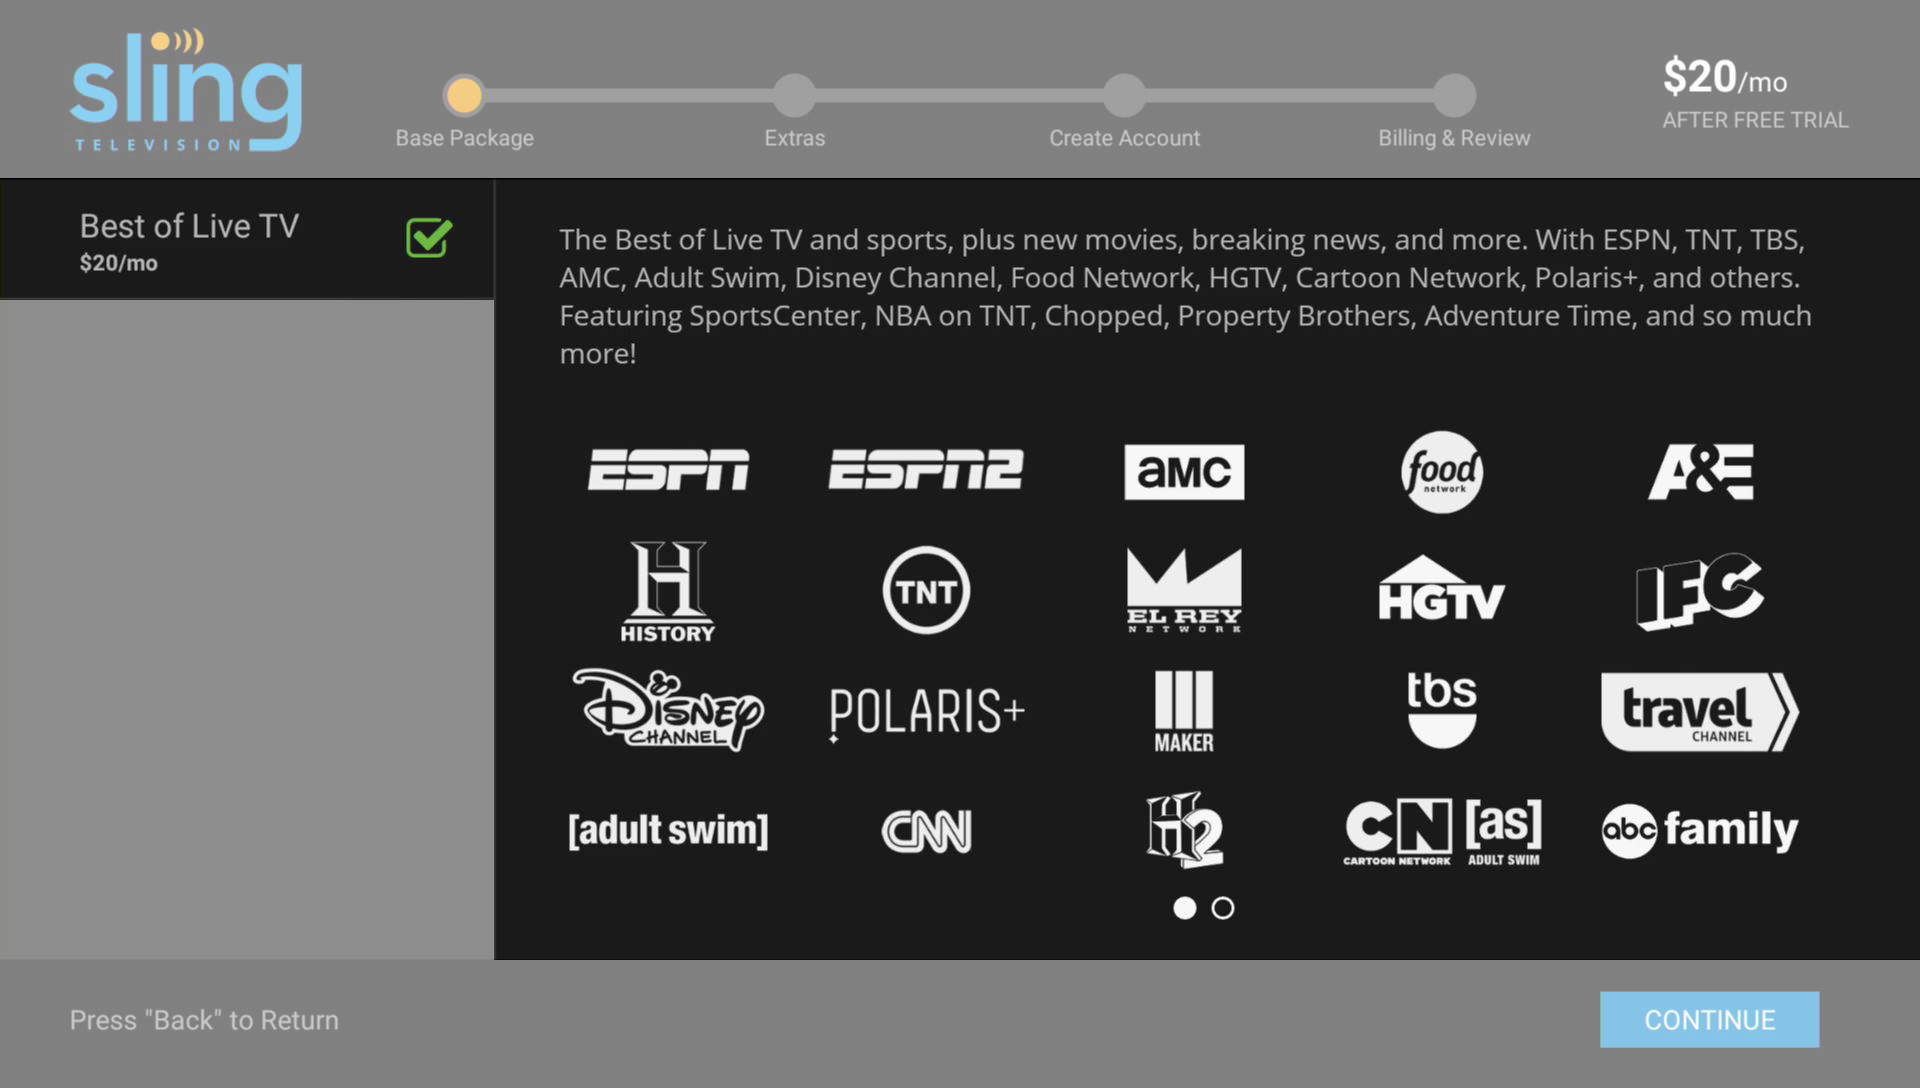 Sling Tv Best Of Live Tv Package 1 Year Subscription